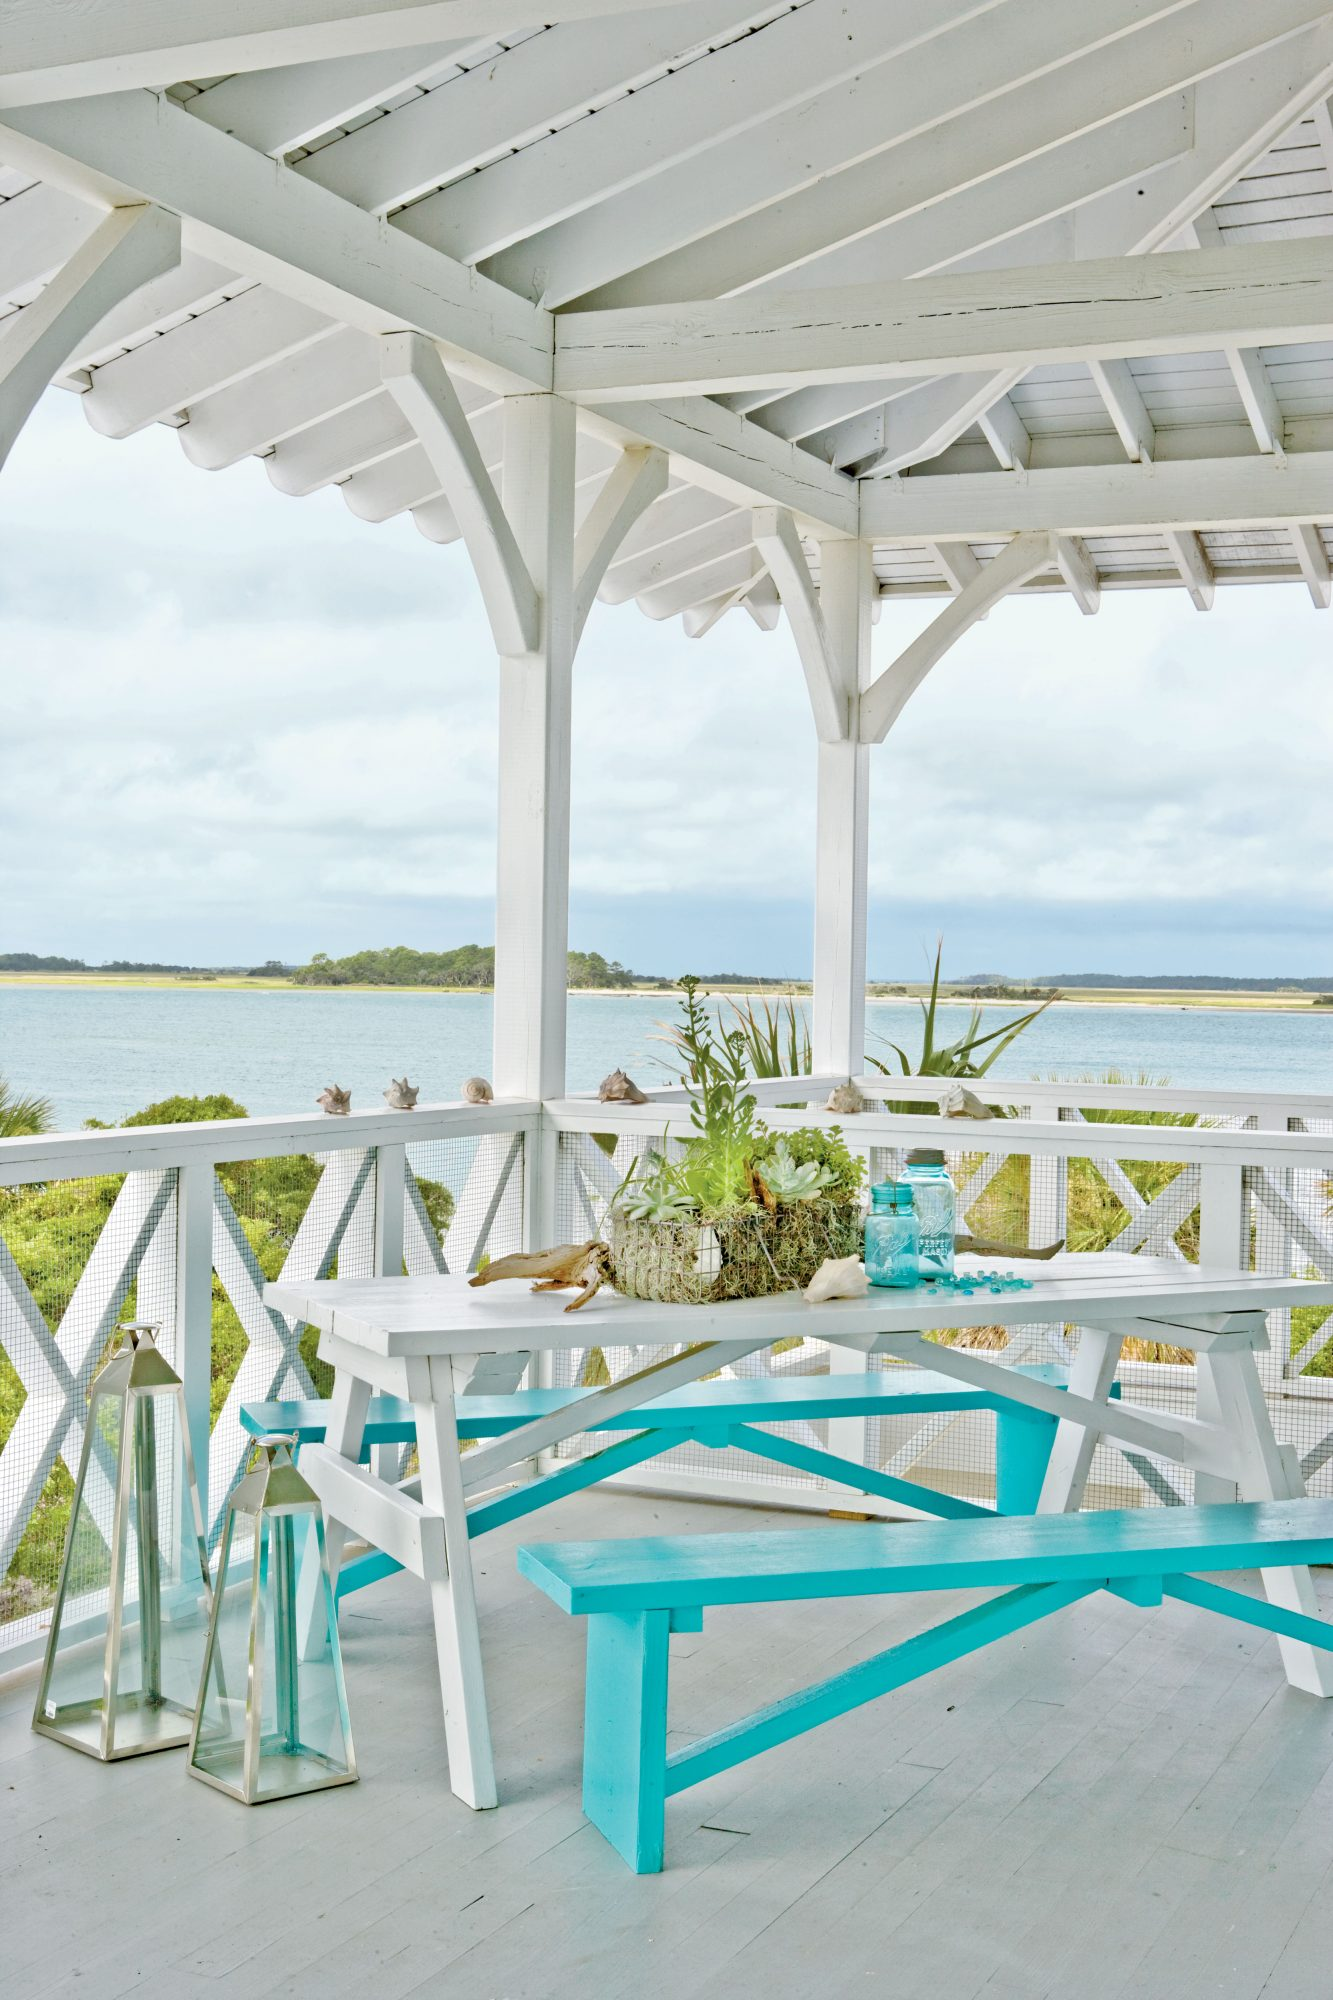 Endless vistas of chartreuse marsh grass and blue-gray water are the focal point of this breezy porch. A white and turquoise picnic set adds a cheerful vibe.